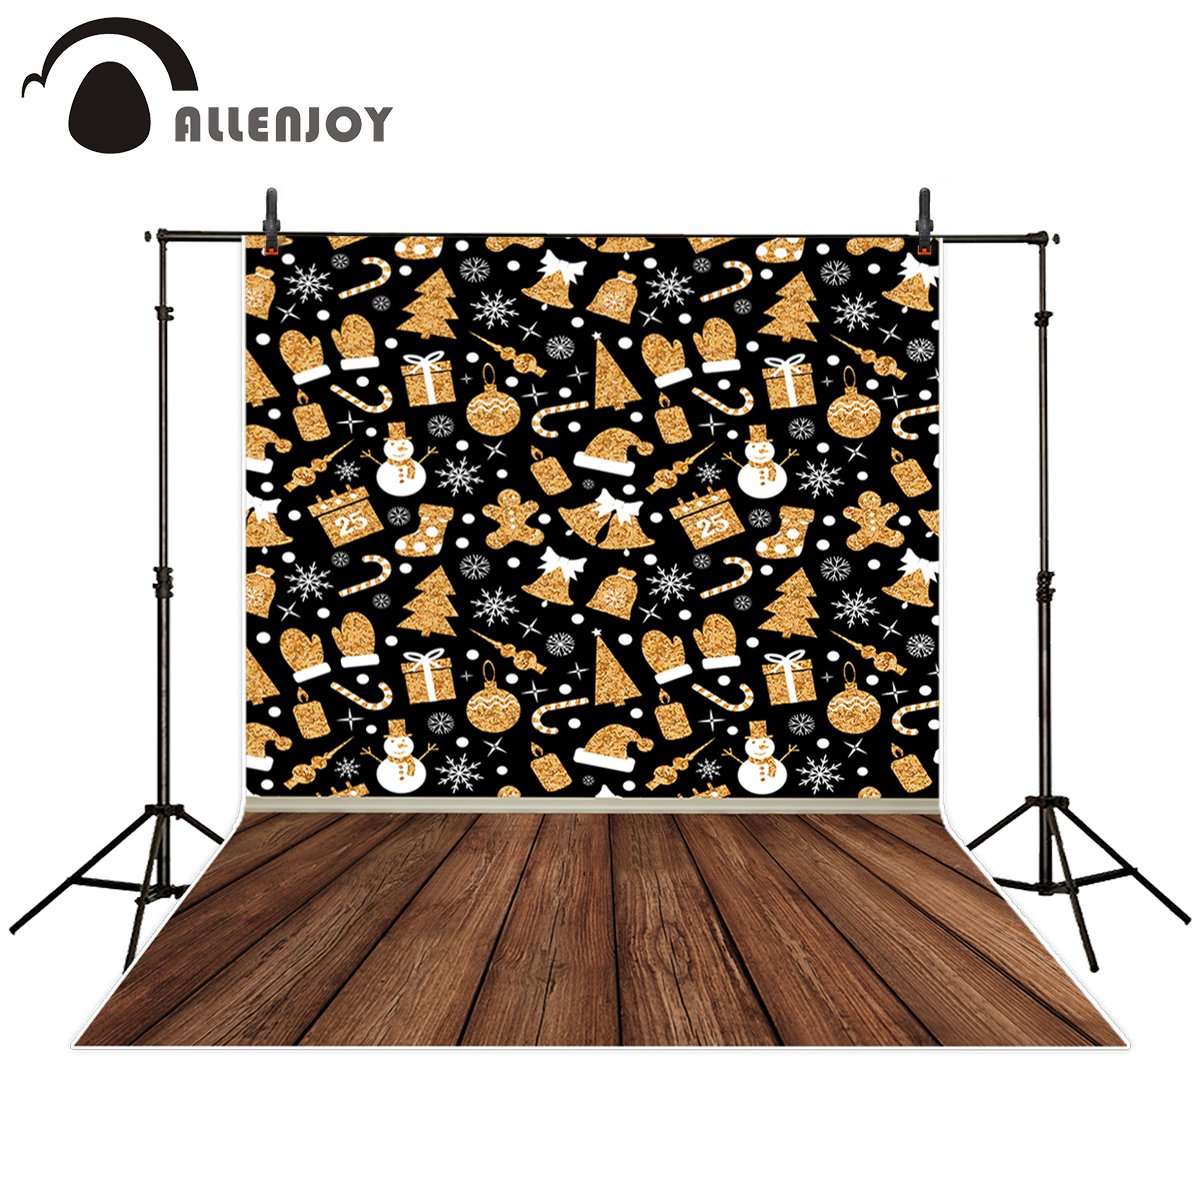 Allenjoy Christmas snowflake photography background snowman tree children party backdrop printed photo studio photographic snowflake snowman christmas tree pattern brooches